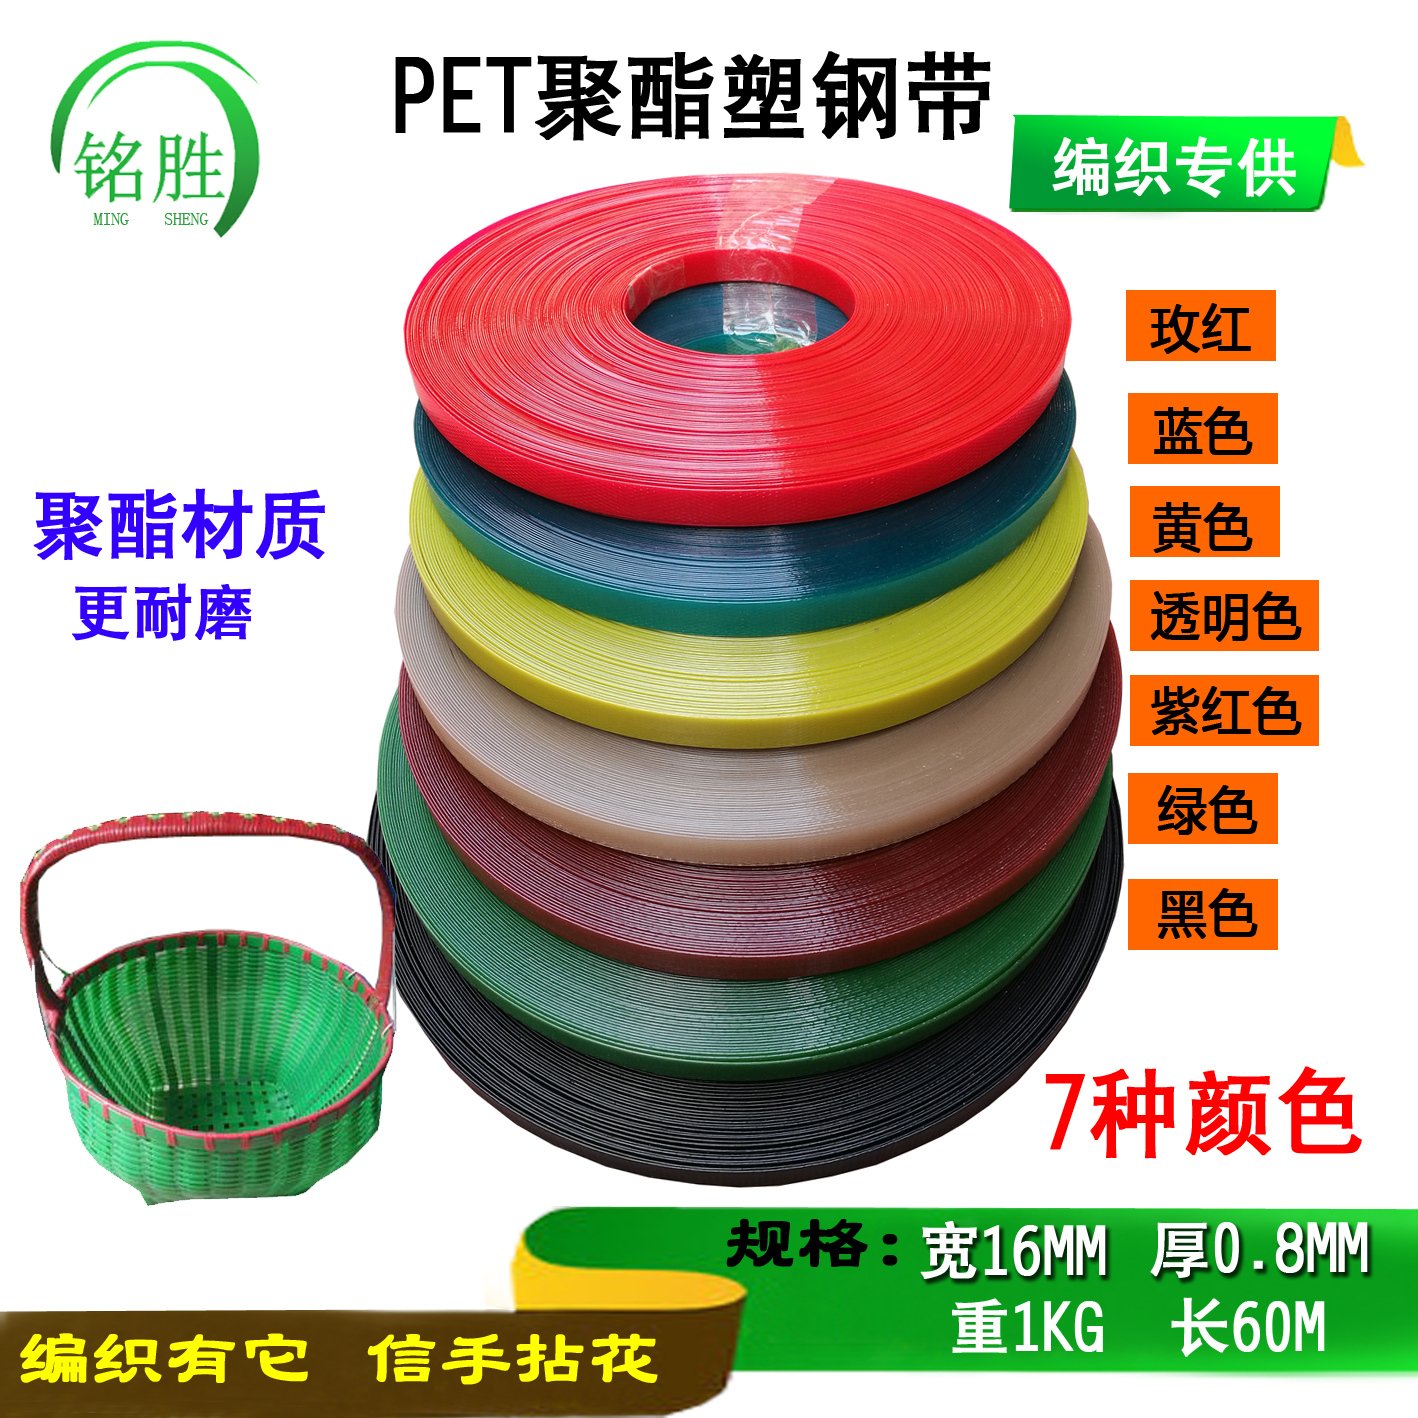 Hand woven, woven basket, plastic packaging belt, color packaging machine belt, woven belt strip